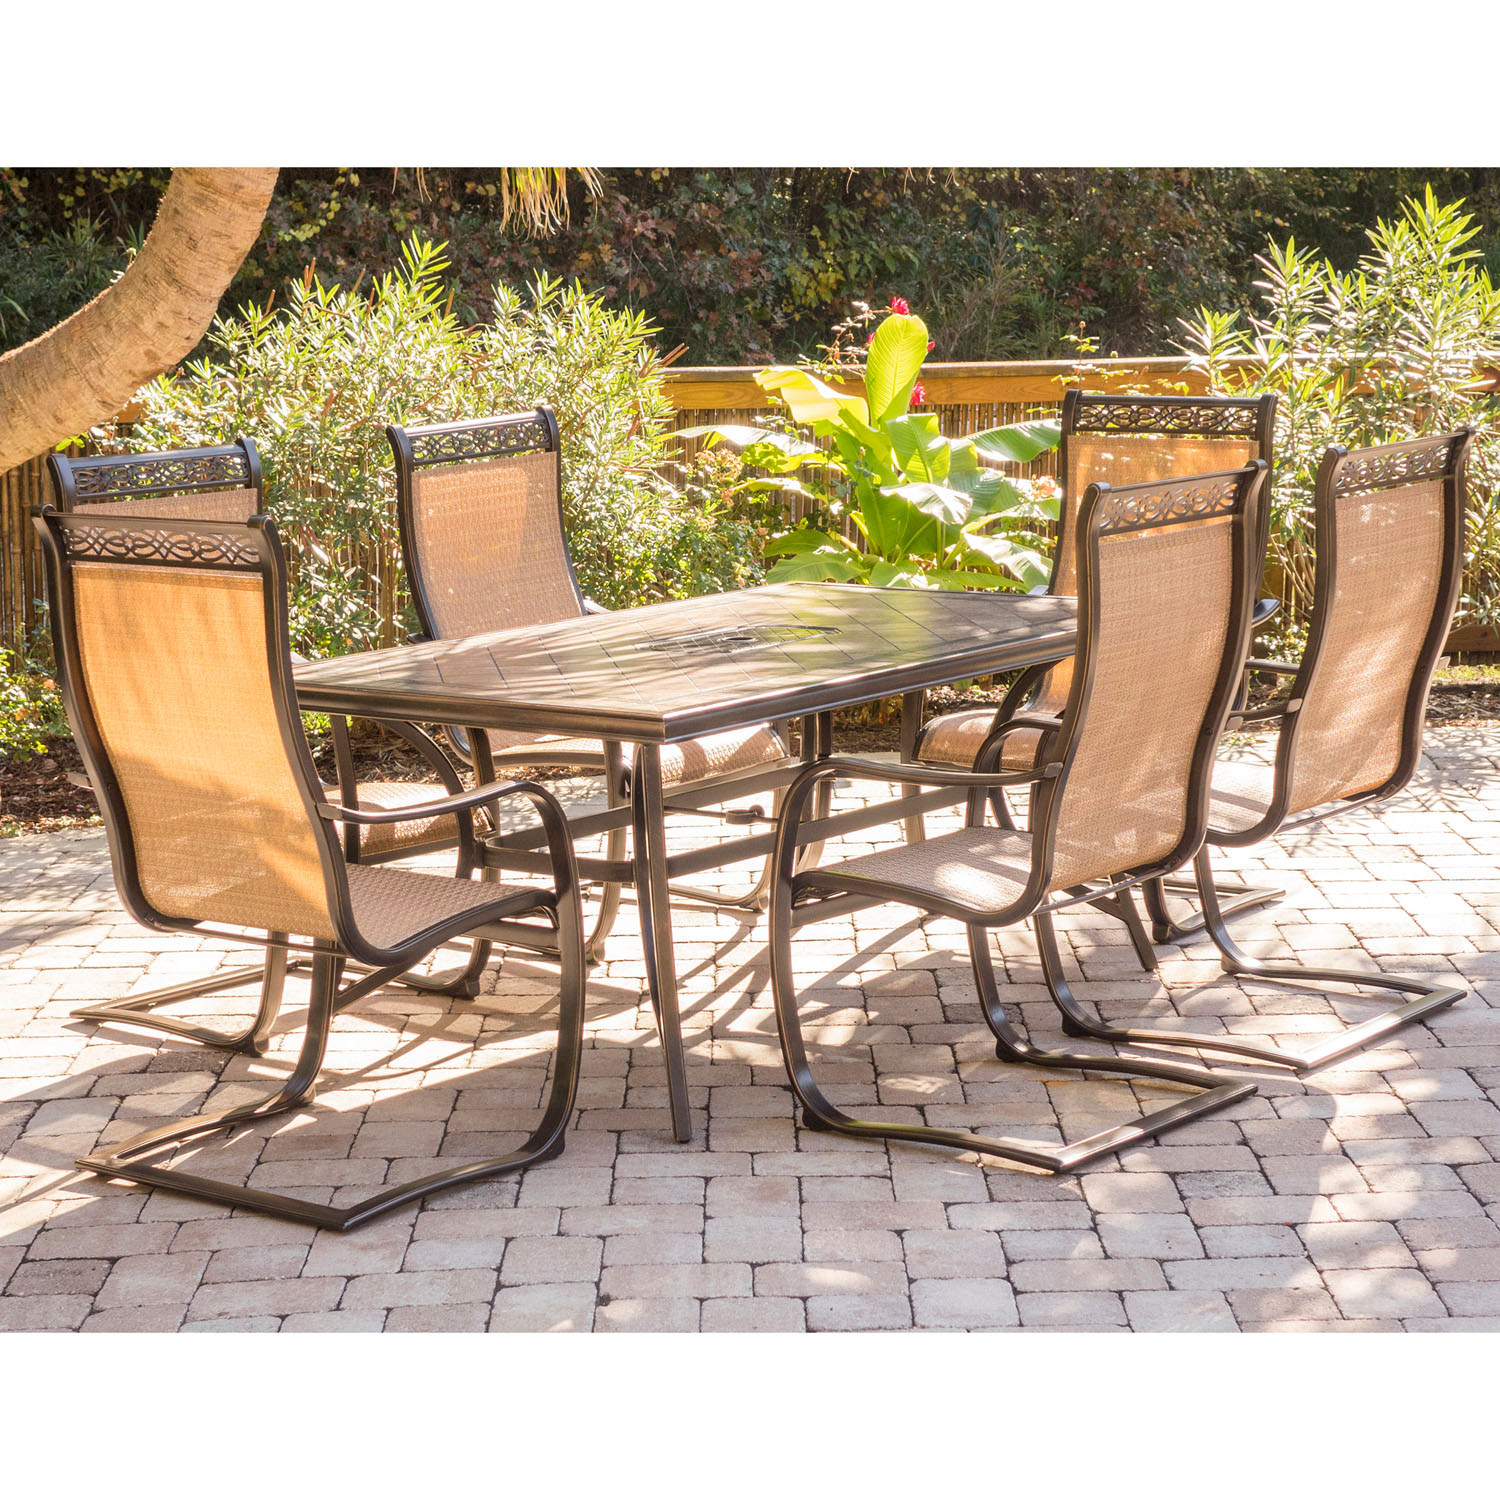 Hanover Monaco 7-Piece Outdoor Dining Set with C-Spring Chairs and Tile-Top Table in Cedar